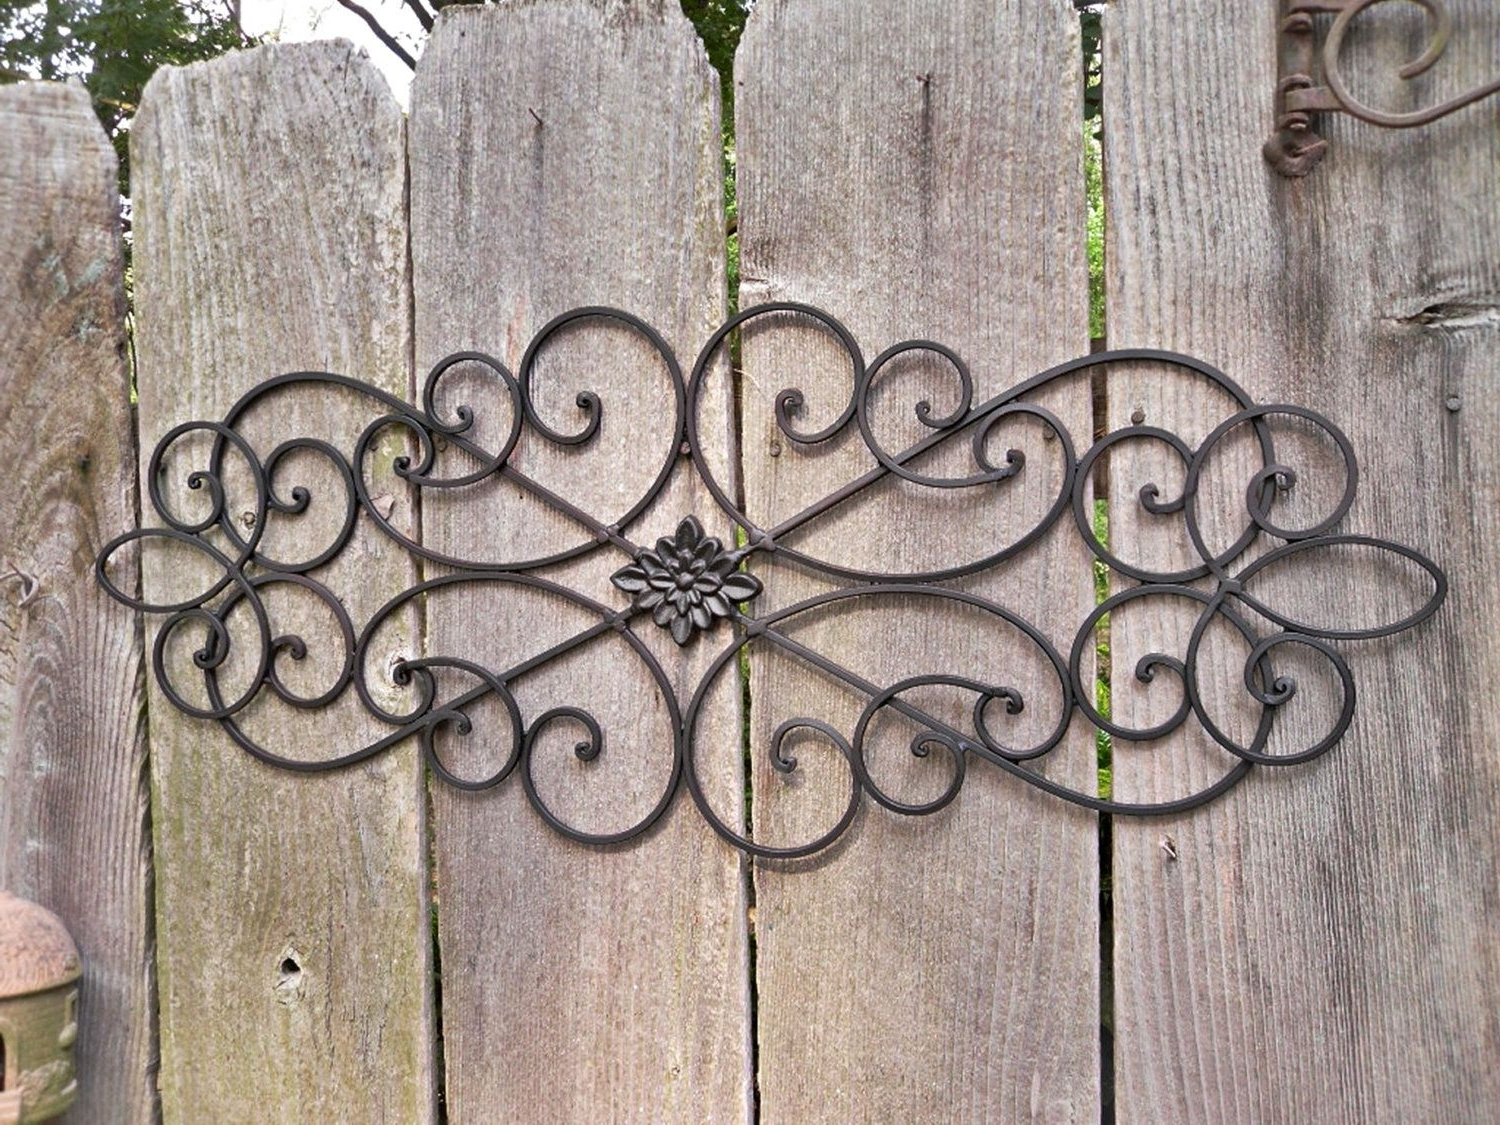 Fascinating Decorative Outdoor Wrought Iron Wall Art U Decor For With Regard To Most Recently Released Wrought Iron Wall Art (View 6 of 15)